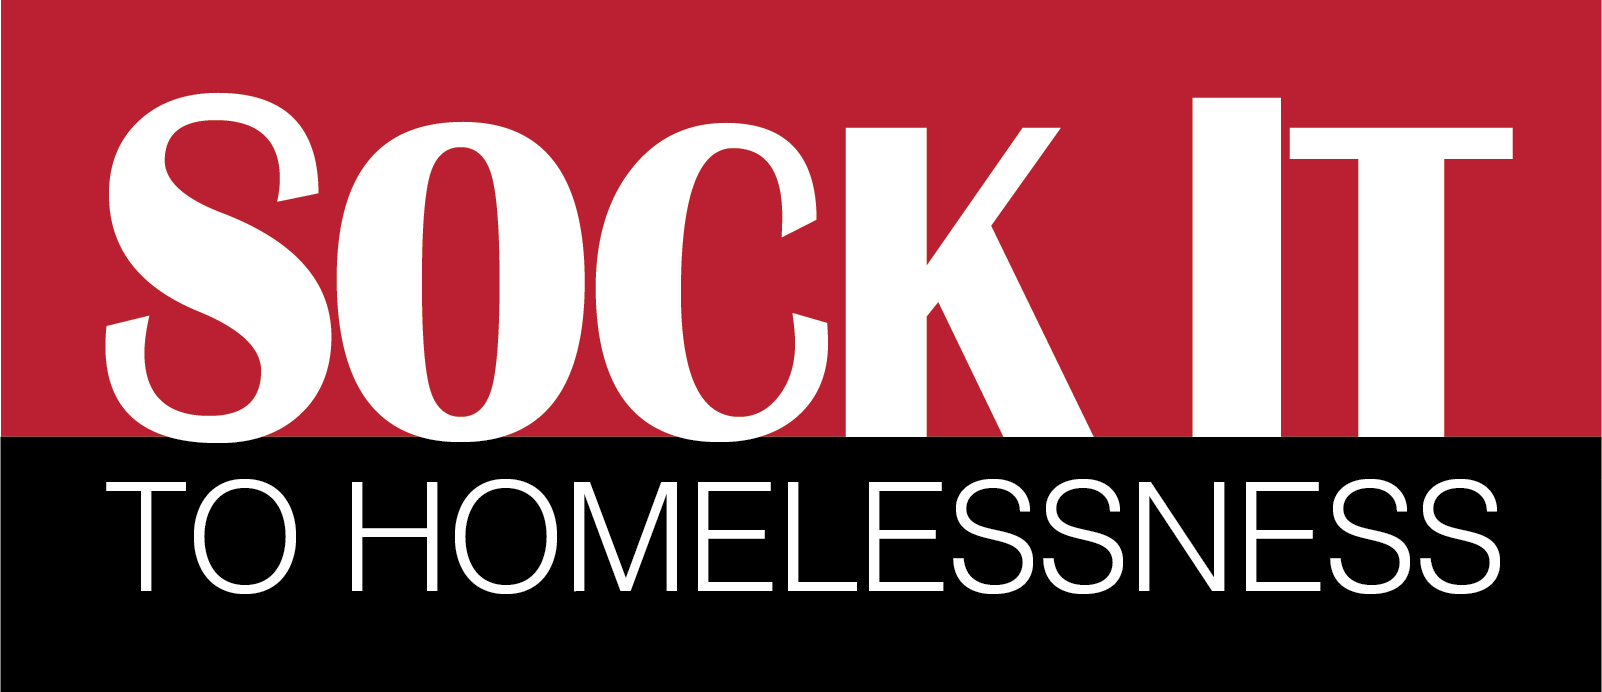 Get more info about Sock It to Homelessness